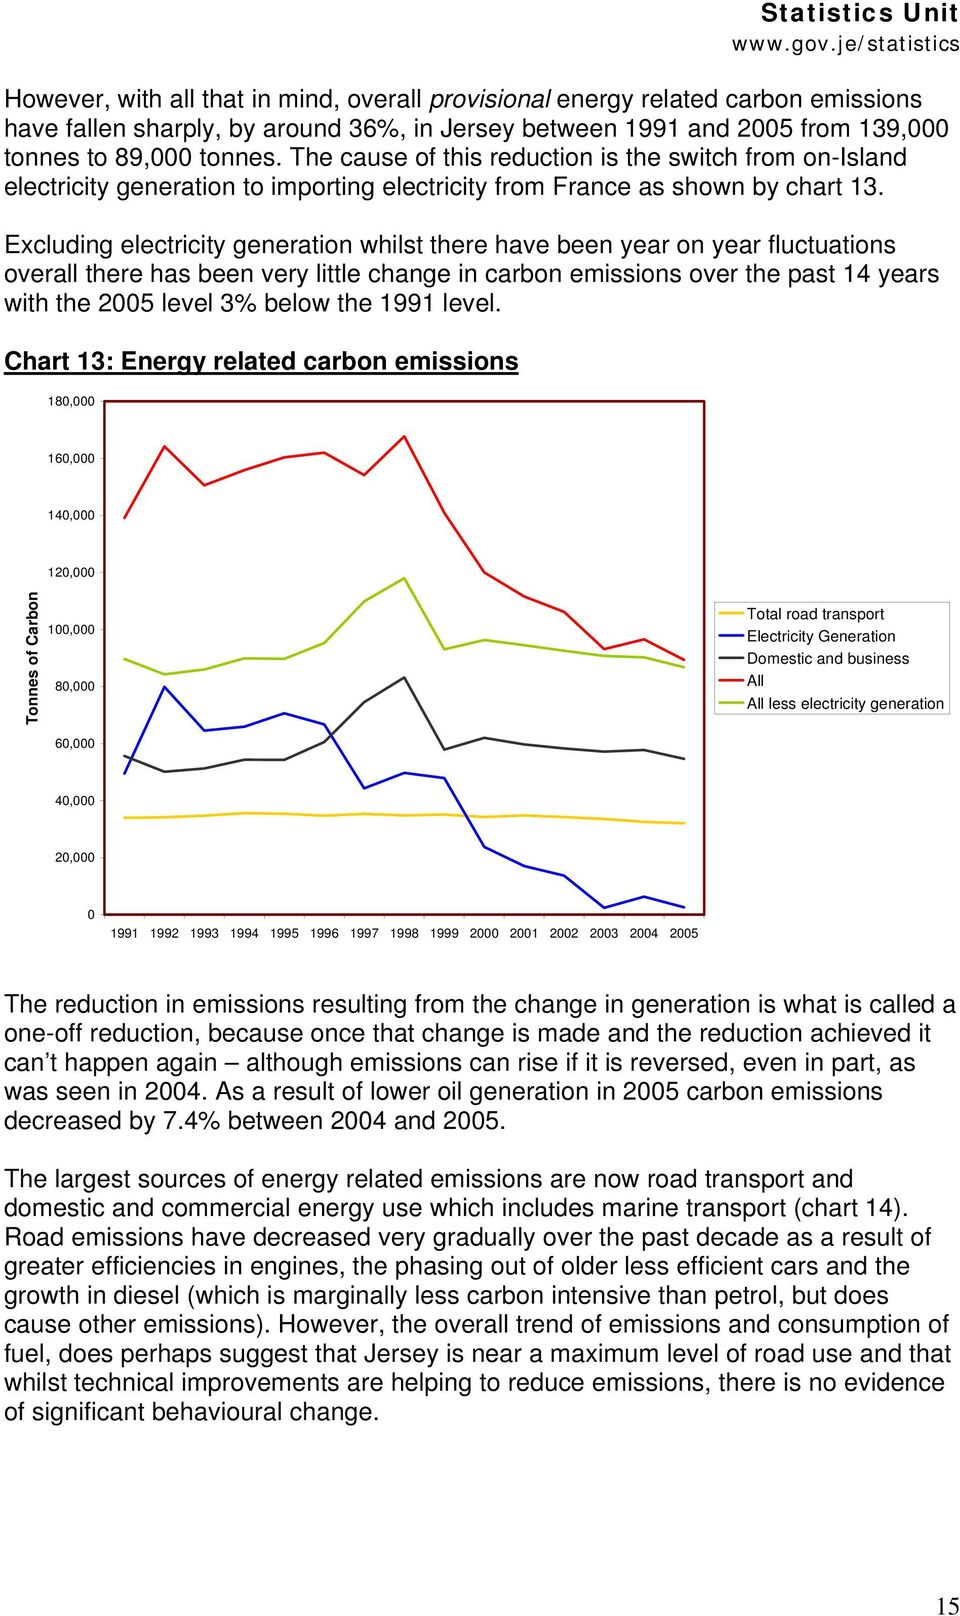 Excluding electricity generation whilst there have been year on year fluctuations overall there has been very little change in carbon emissions over the past 14 years with the 25 level 3% below the